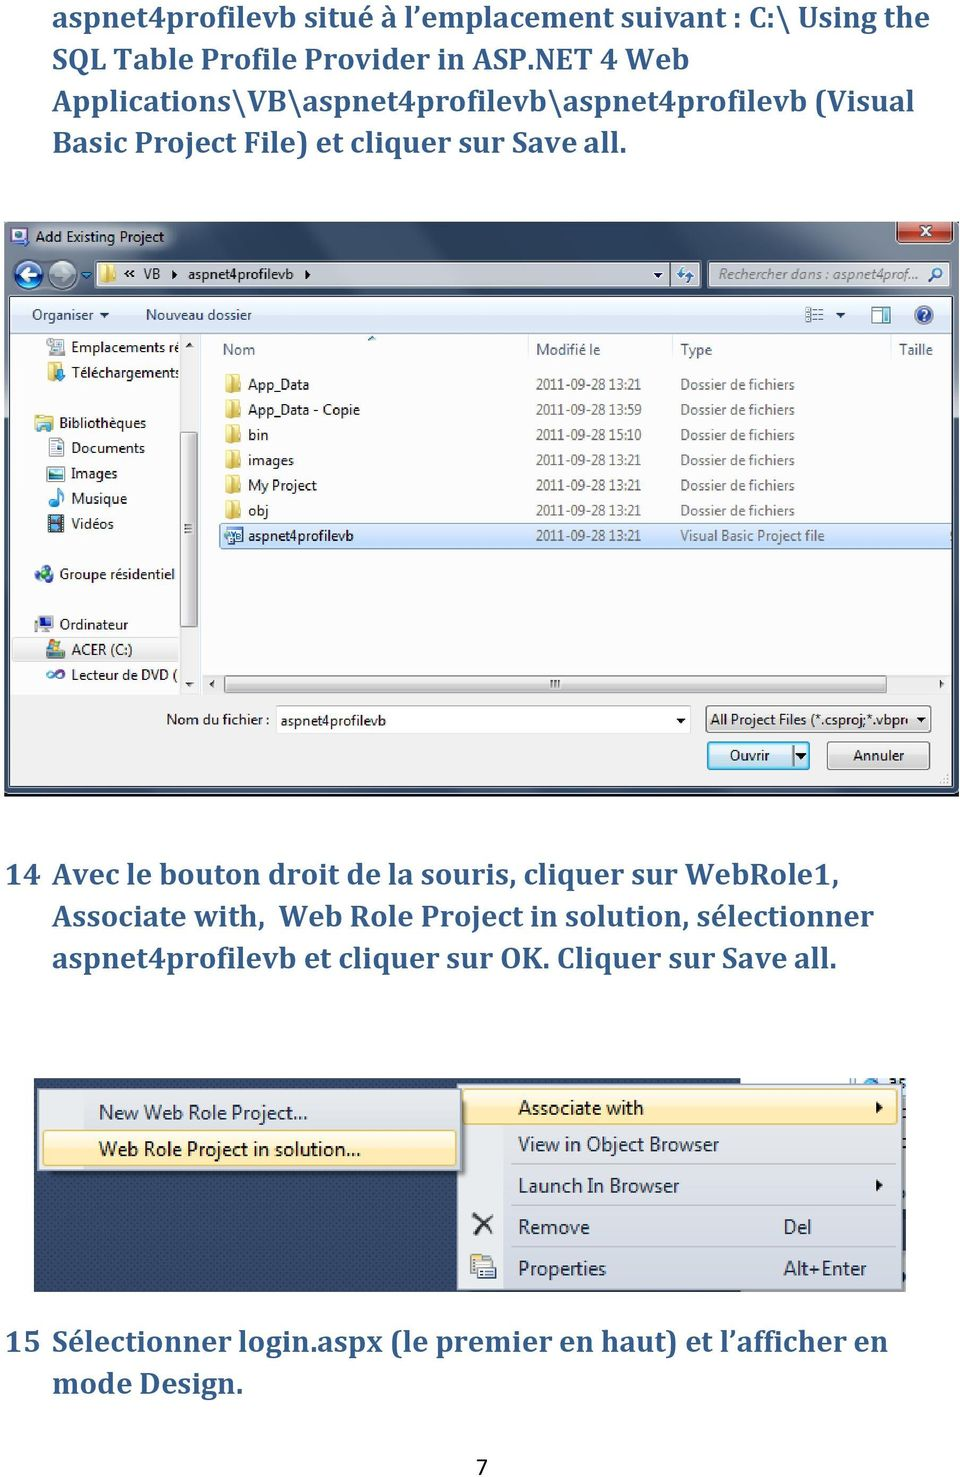 14 Avec le bouton droit de la souris, cliquer sur WebRole1, Associate with, Web Role Project in solution,